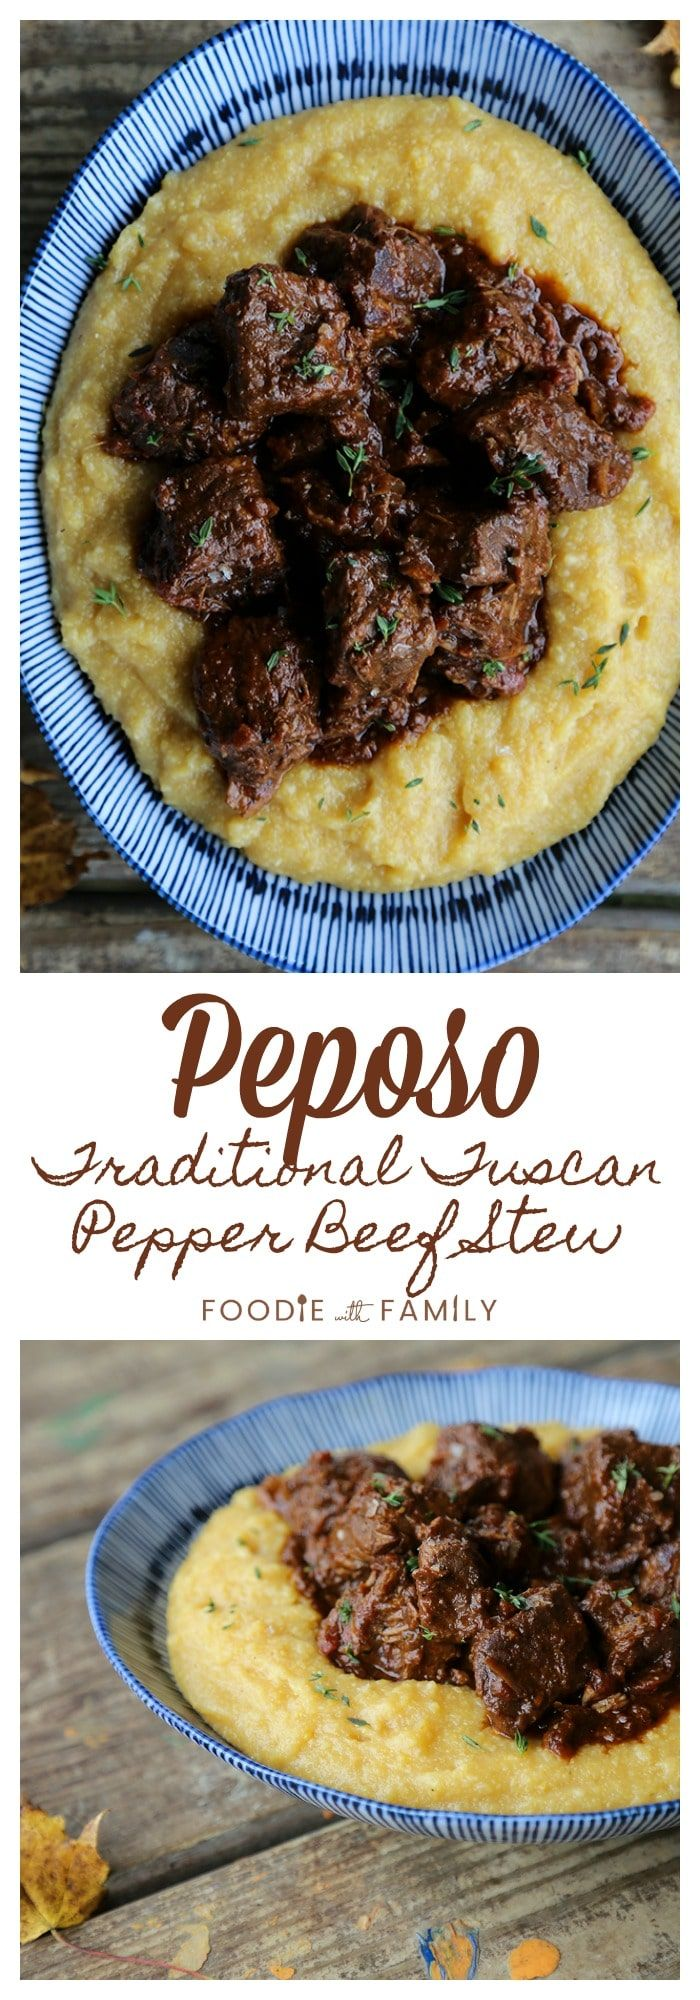 Photo of Traditional Tuscan Peposo – Peppered Beef Stew.